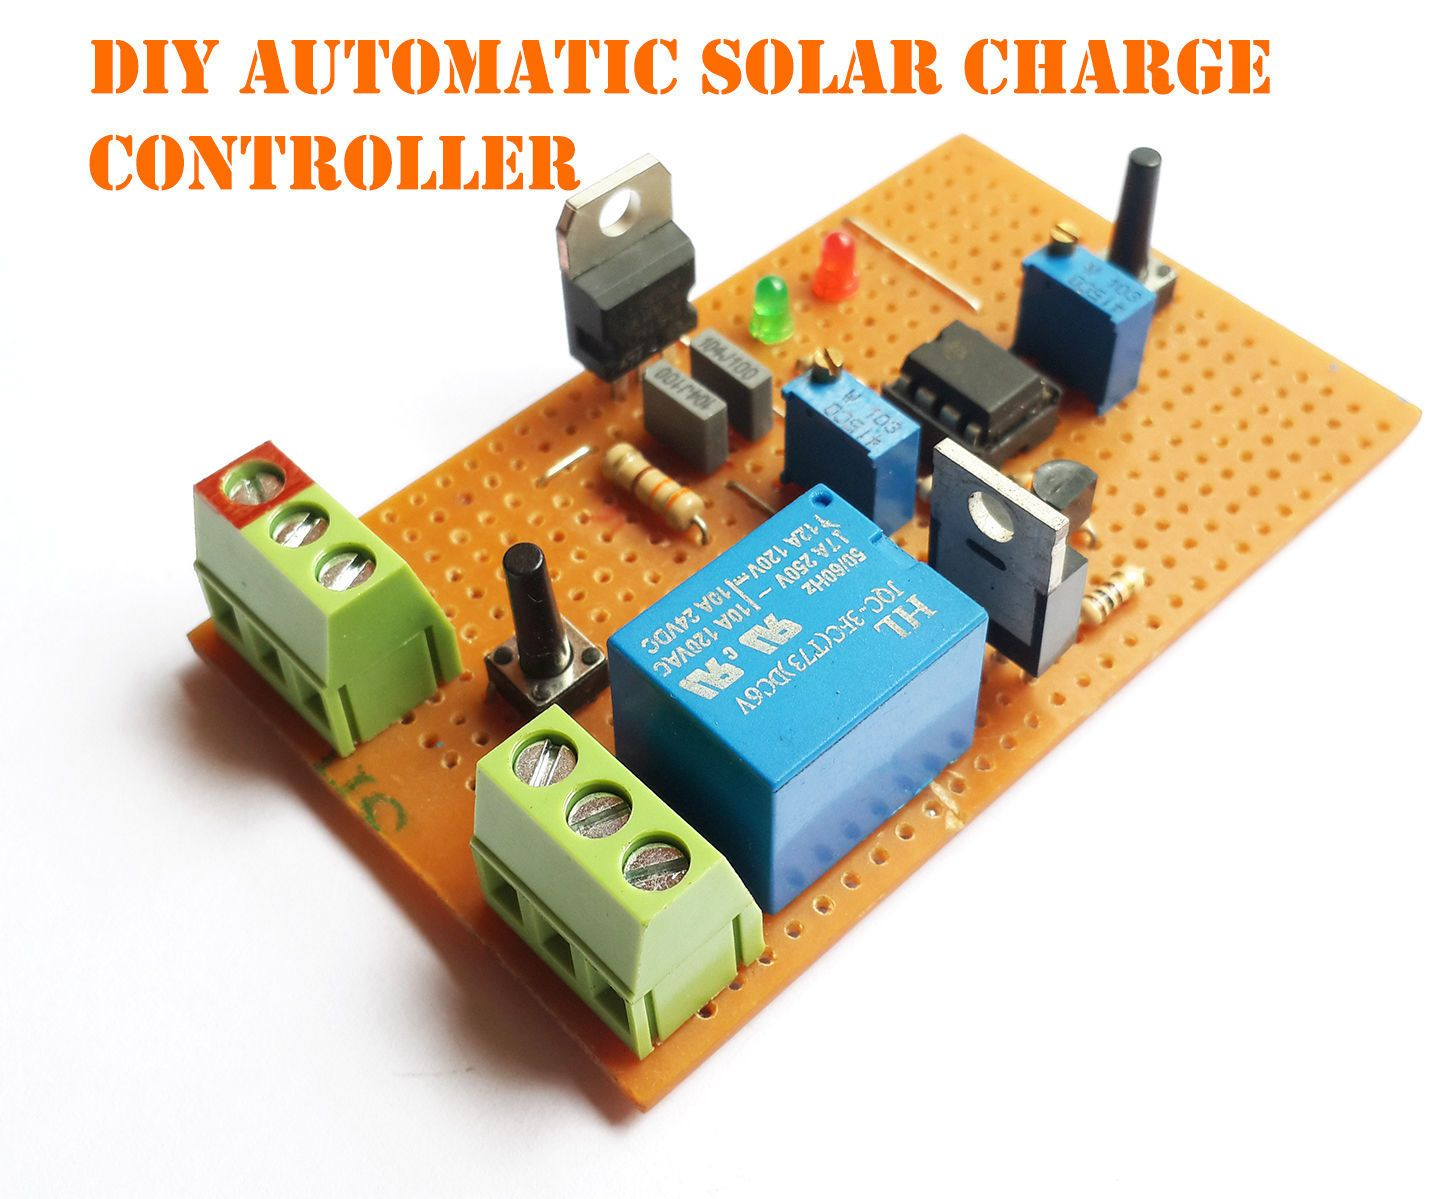 Diy Automatic Solar Charge Controller Electronics Pinterest Simple Power Projects On Image Of A Cell Schematic Hello Friends Today I Am Back With Another Project Called Its An Switching Circuit That Used To Control